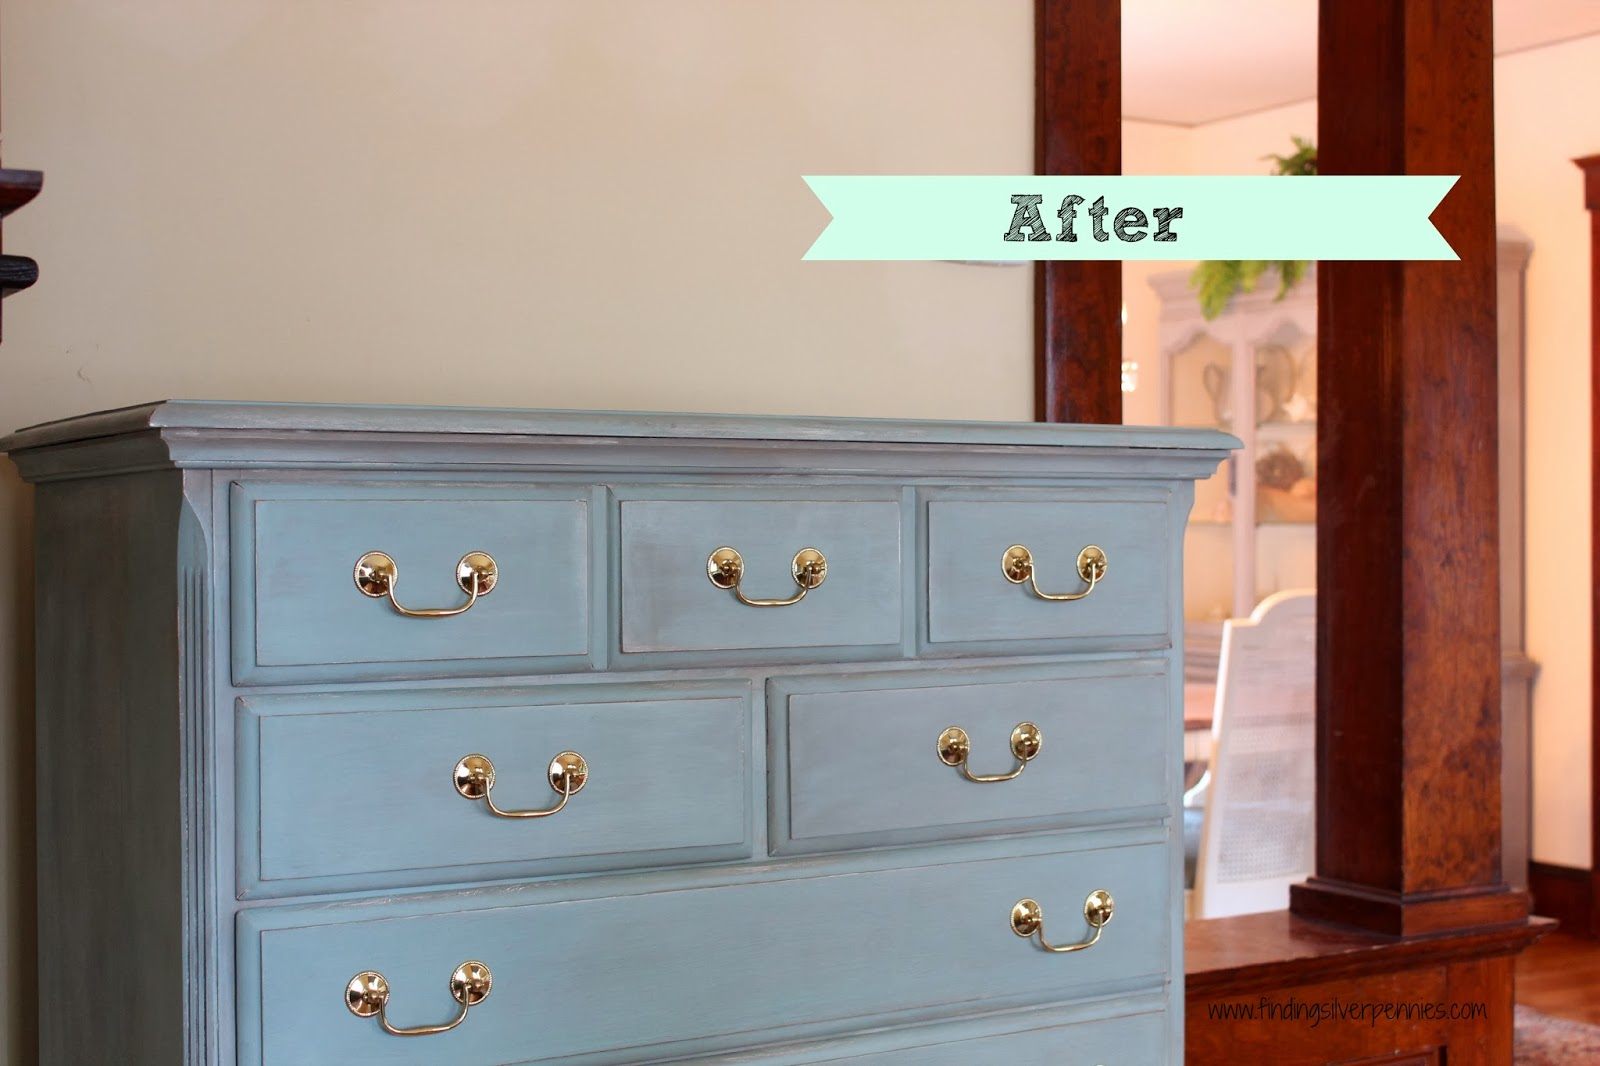 Paint Wash On Wood Leah Dresser Before After Finding Silver Pennies